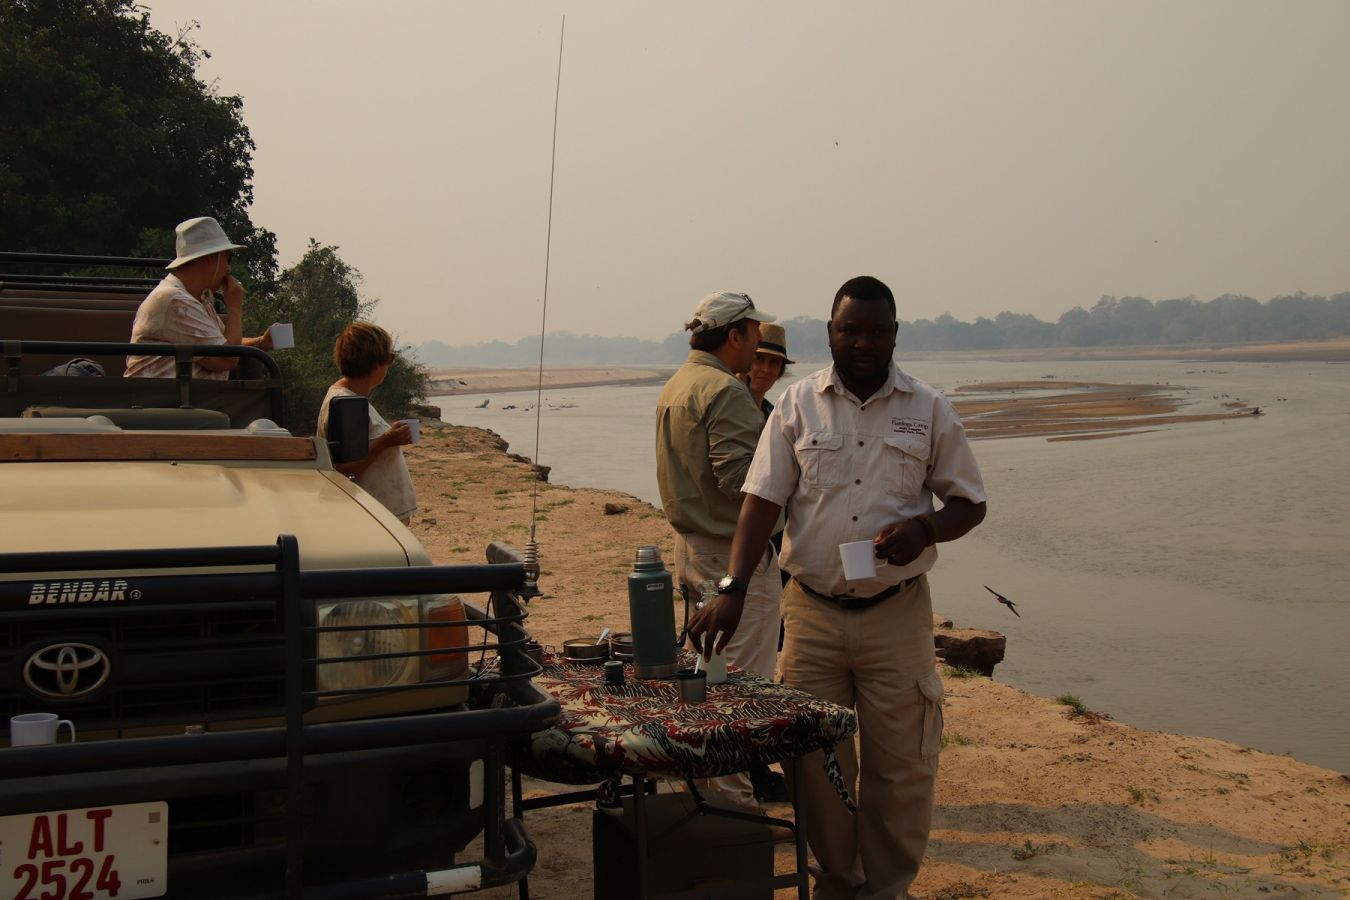 Flatdogs Camp koffie break aan Luangwa rivier